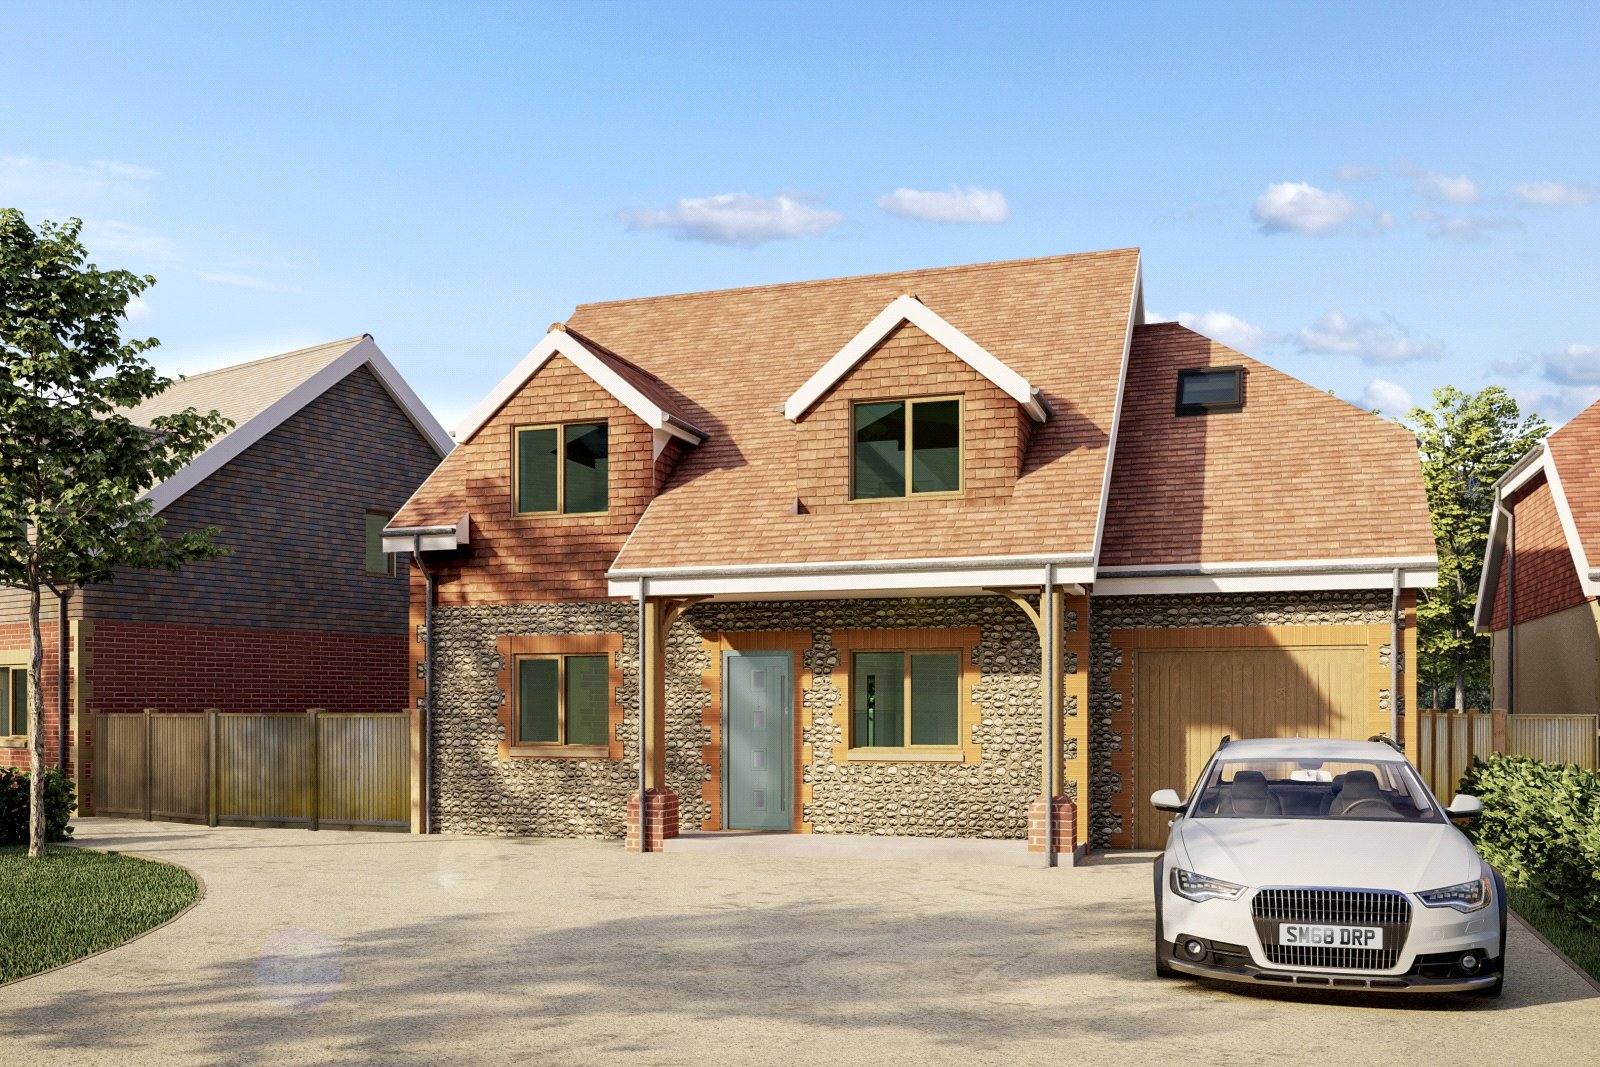 4 bed house for sale in Swallows Gate, Dappers Lane, Angmering  - Property Image 1